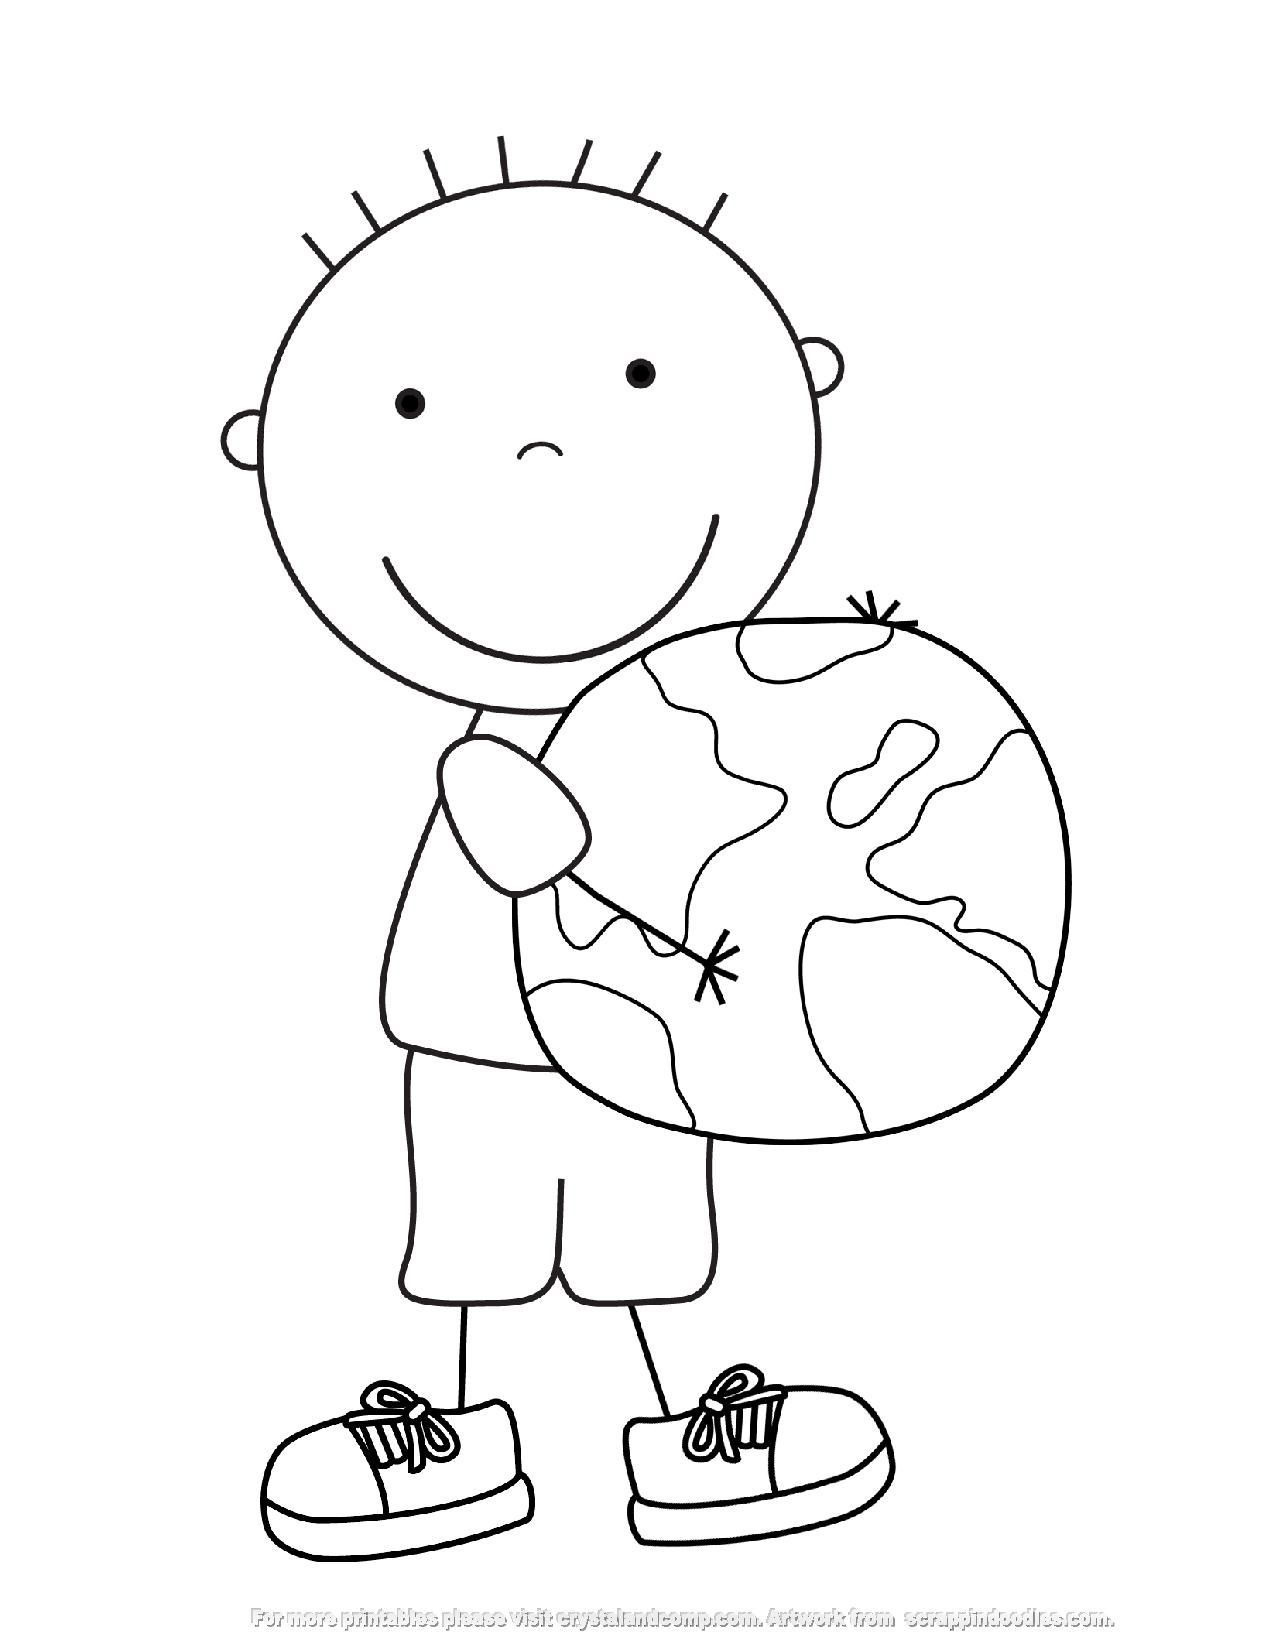 Environmental coloring activities - We Are In Love With Kid Color Pages At Our House These Were So Fun To Make As We Celebrate Earth Day Here Is A Collection Of Six Pages Kids Can Color